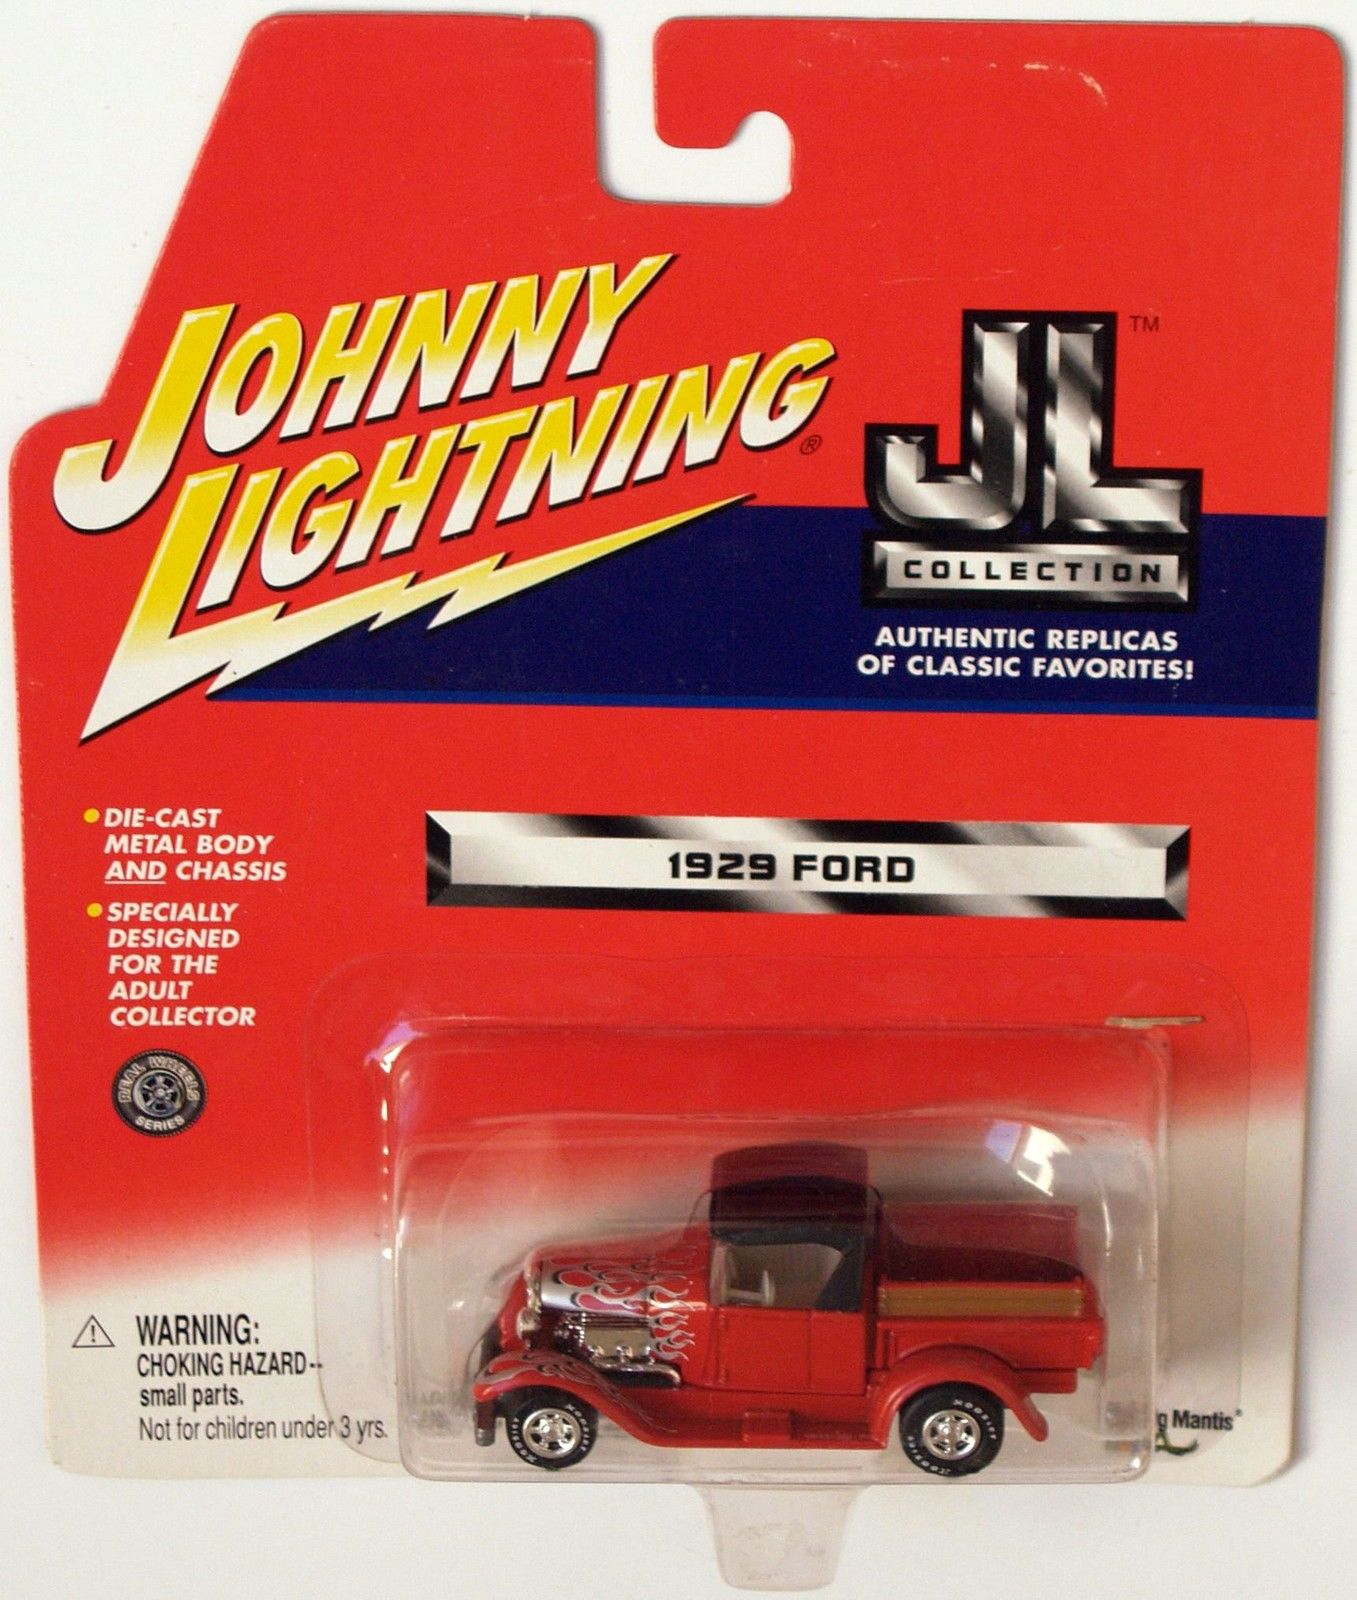 JOHNNY LIGHTNING 2001 - JL COLLECTION - RED 1929 FORD TRUCK